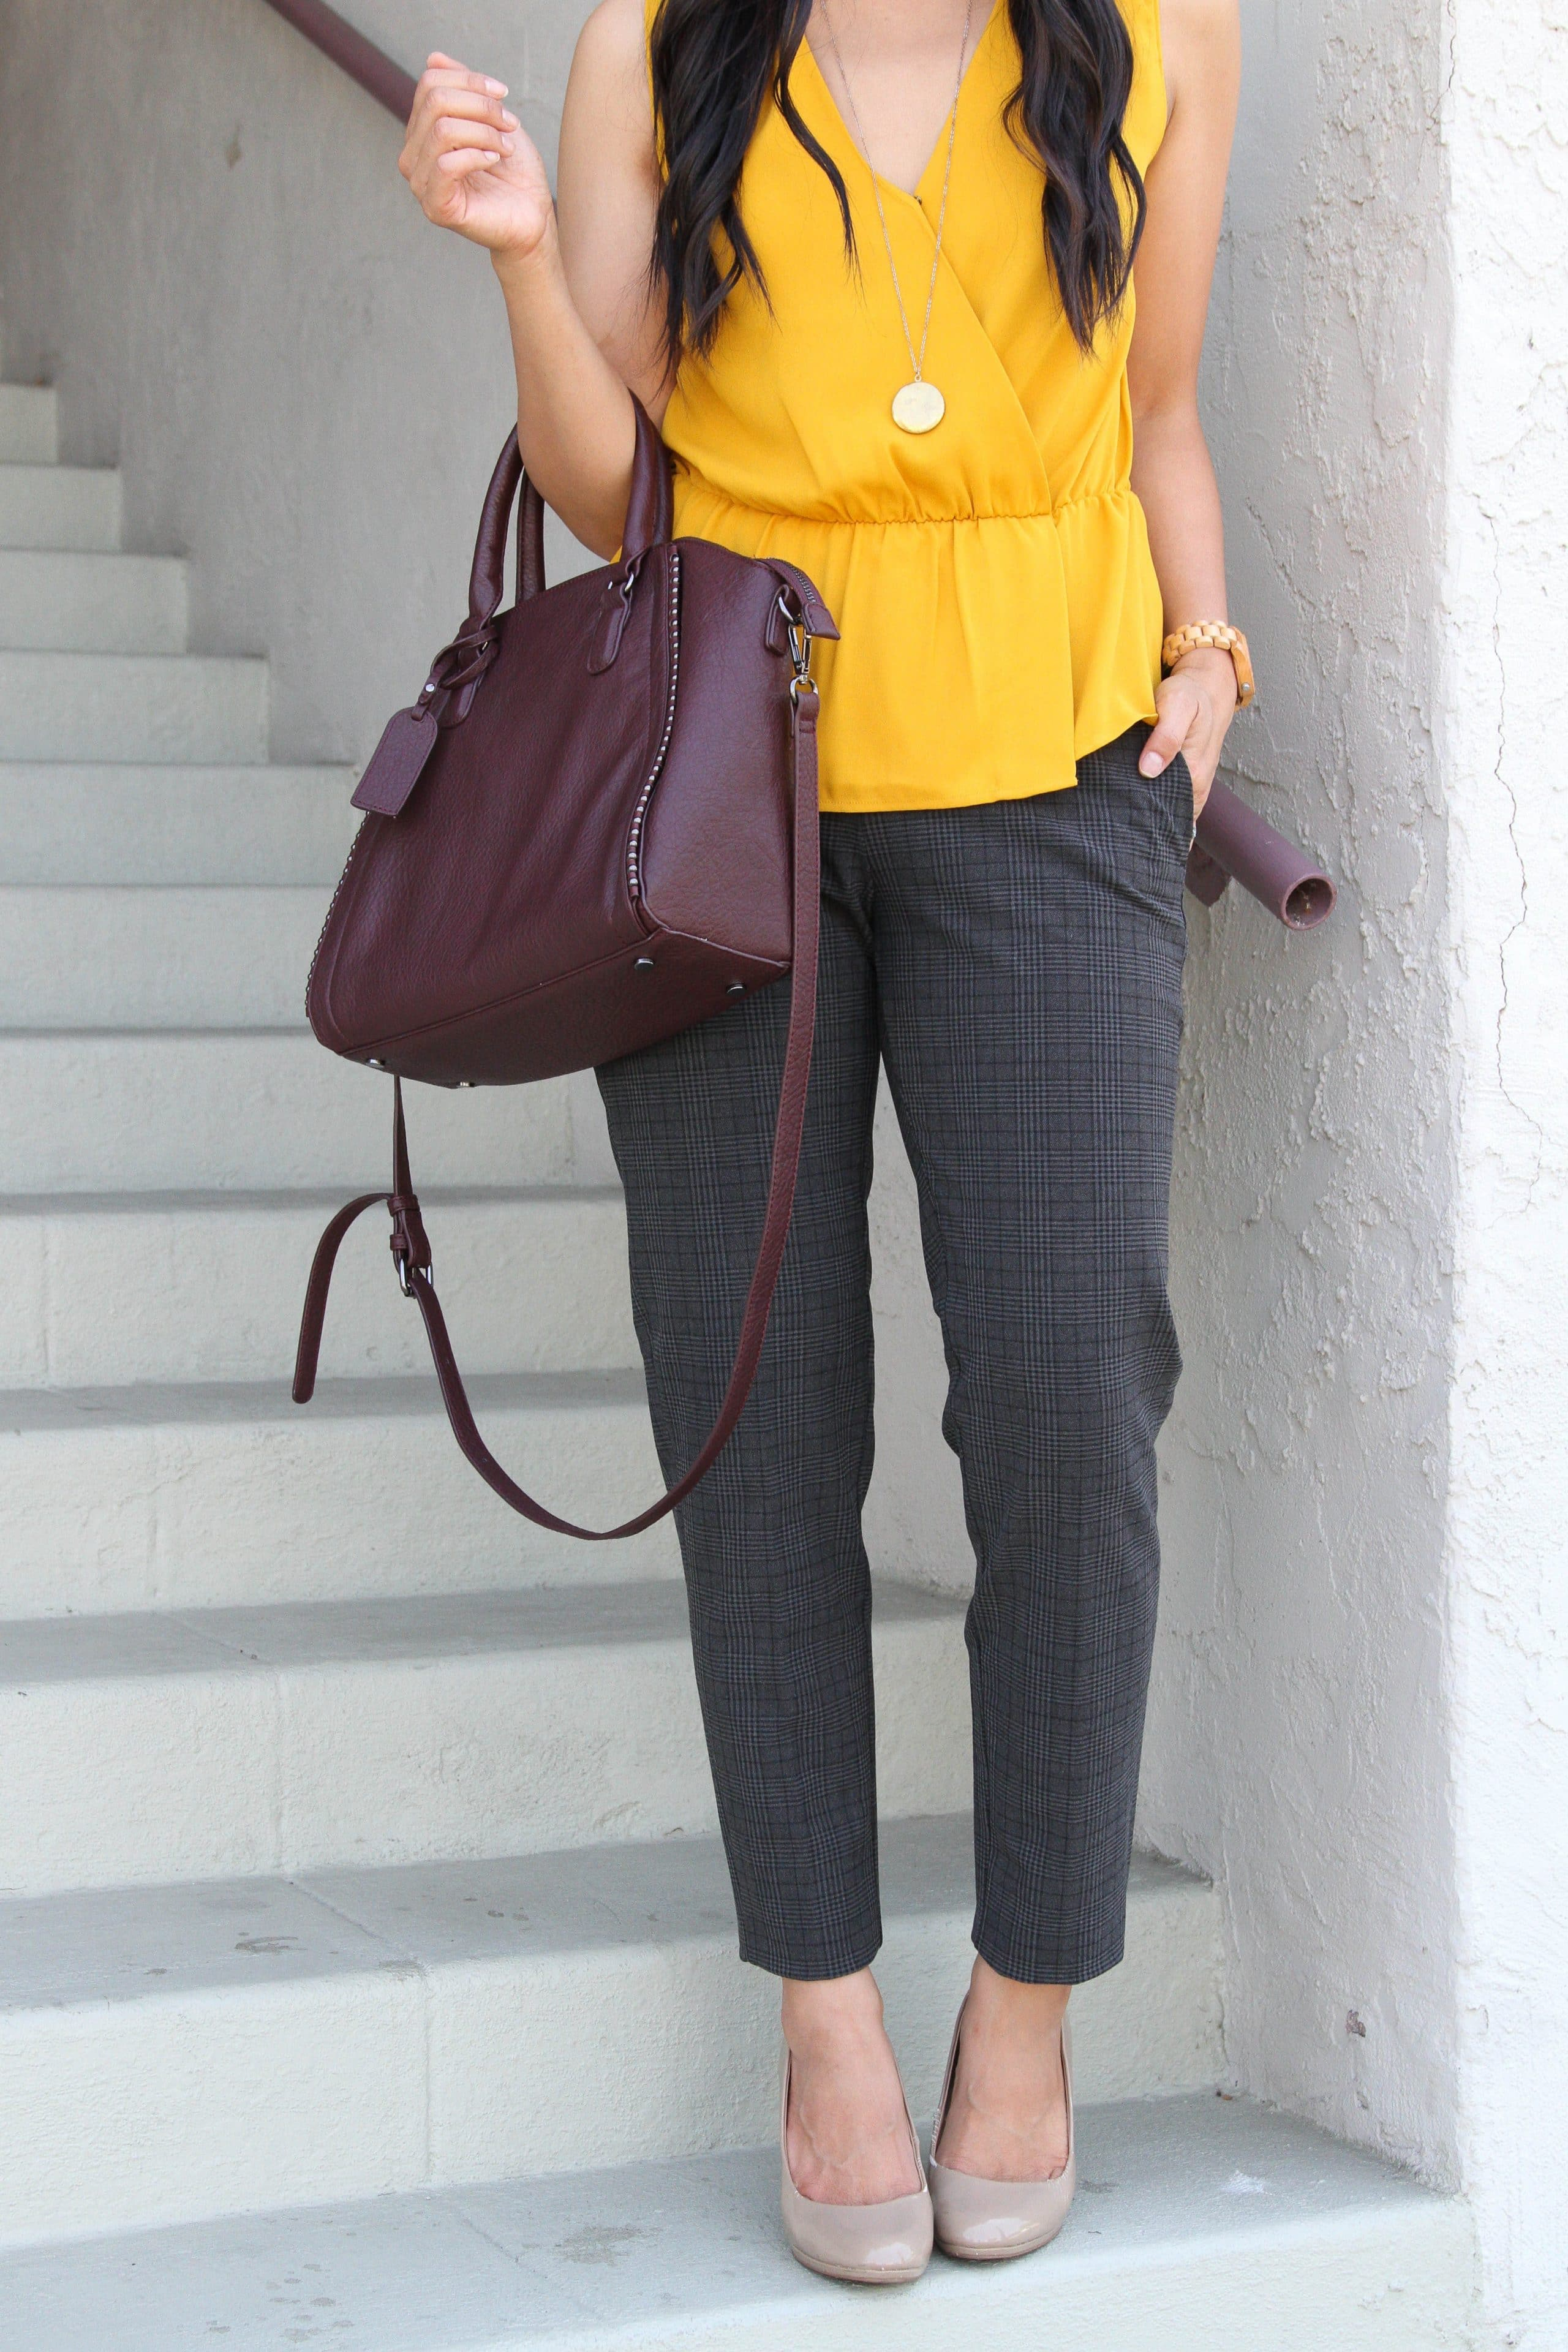 yellow top + taupe pants + grey pants + maroon purse + long pendant necklace